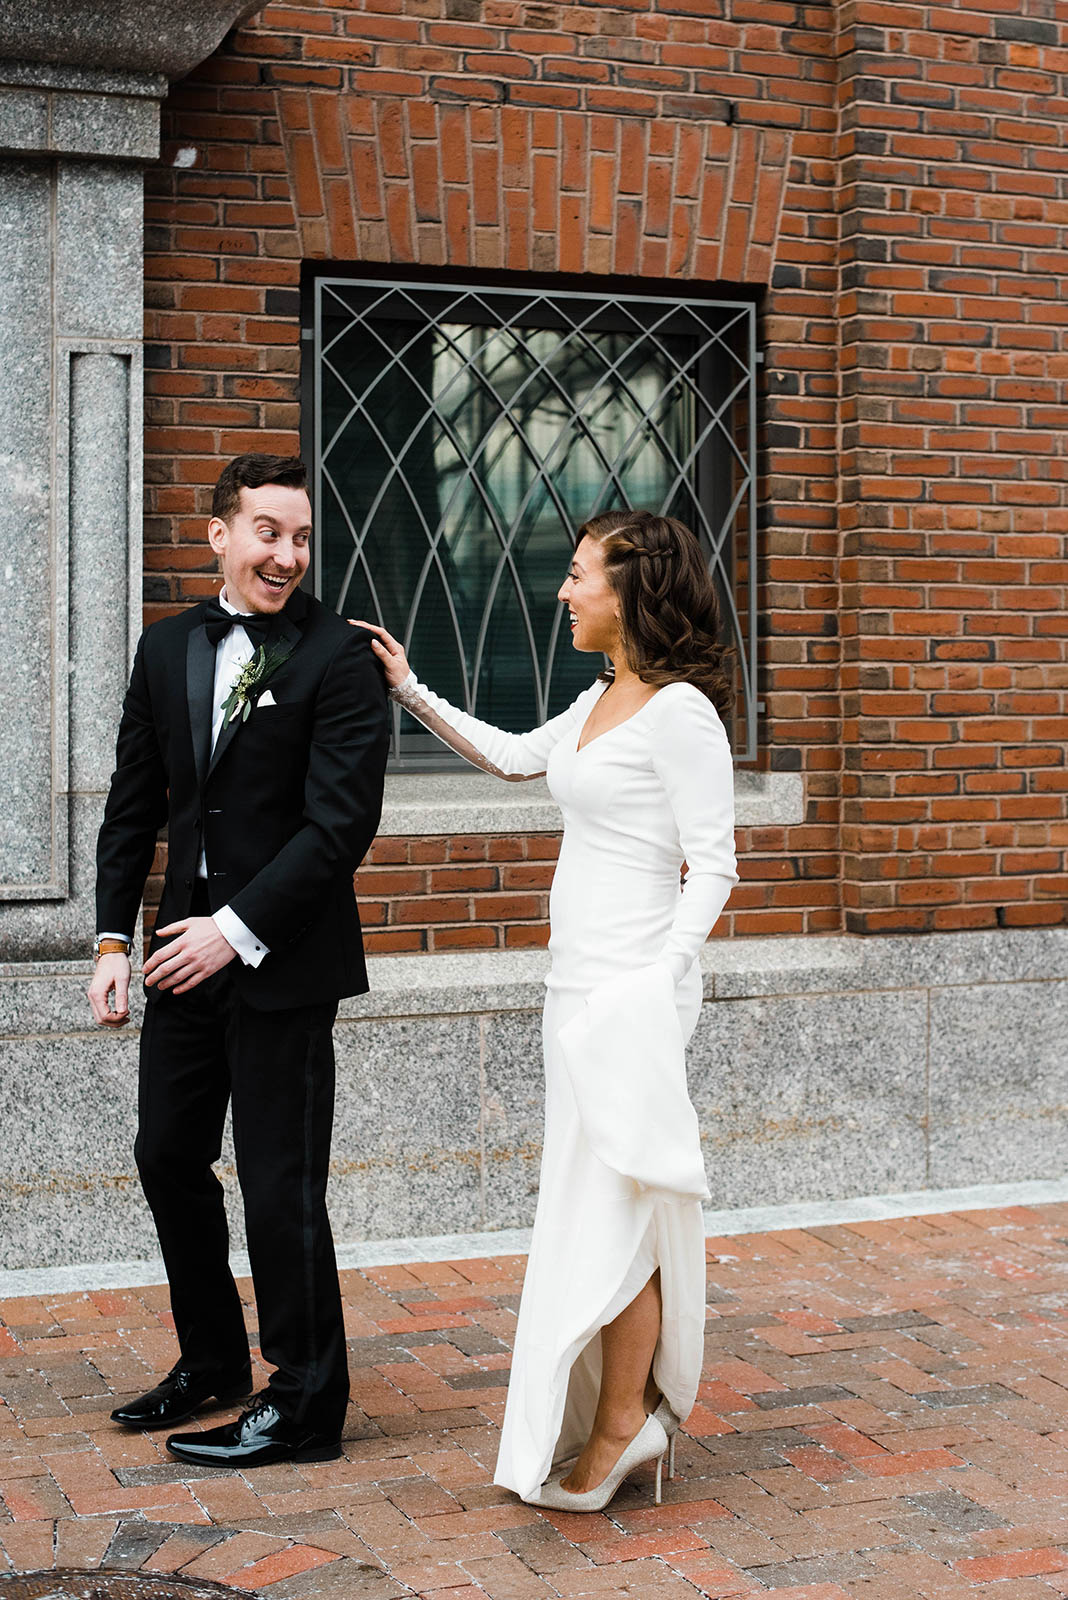 Wedding_Erica_Richie_2018-25.jpg